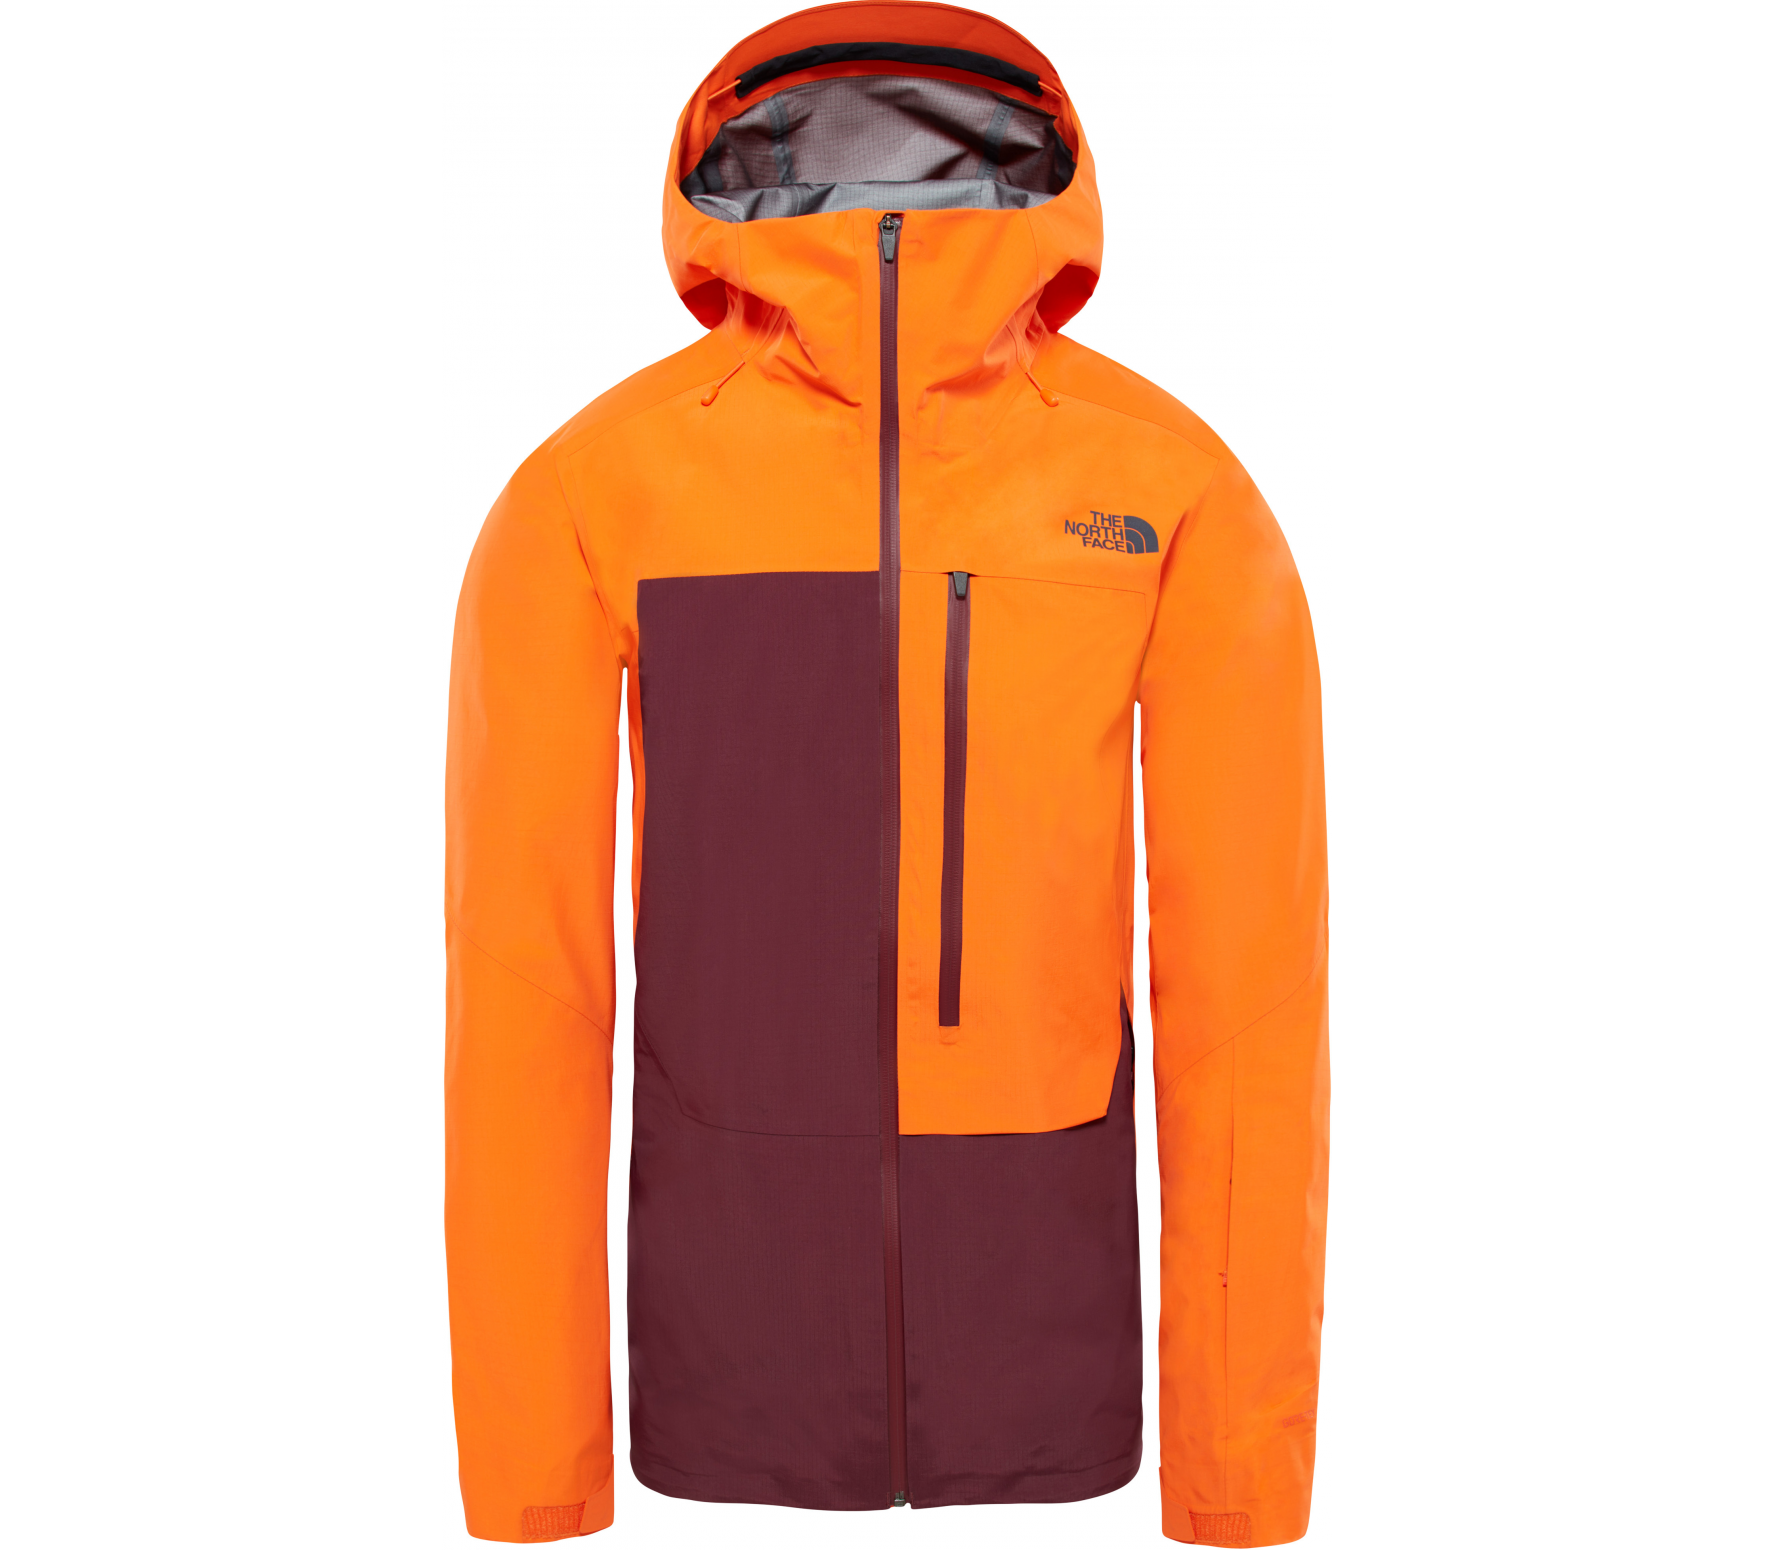 e5b9127ce80442 The North Face - Free Thinker Herren Skijacke (orange) im Online ...